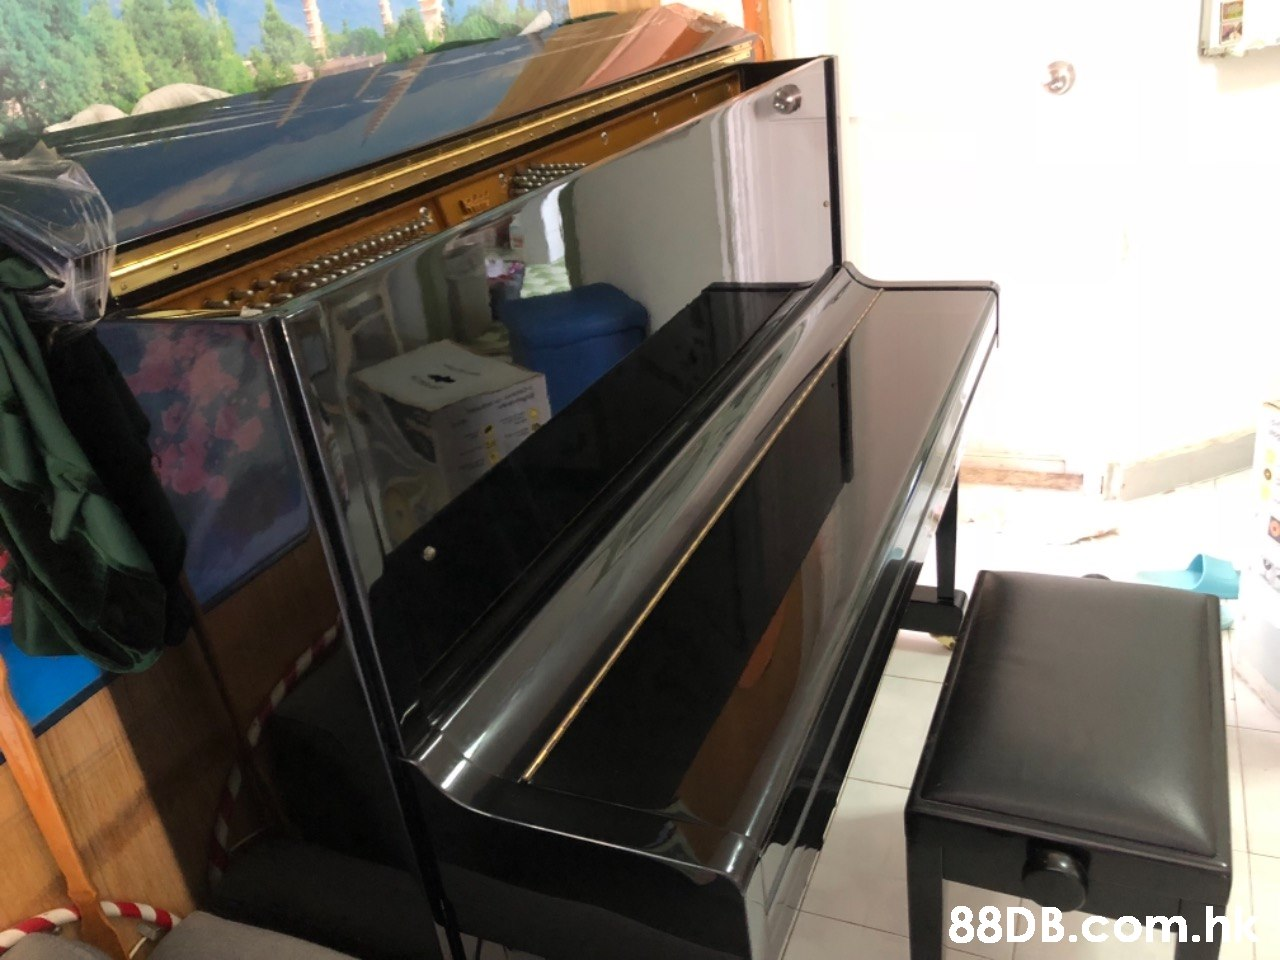 88DB.CORm  Piano,Room,Technology,Electronic device,